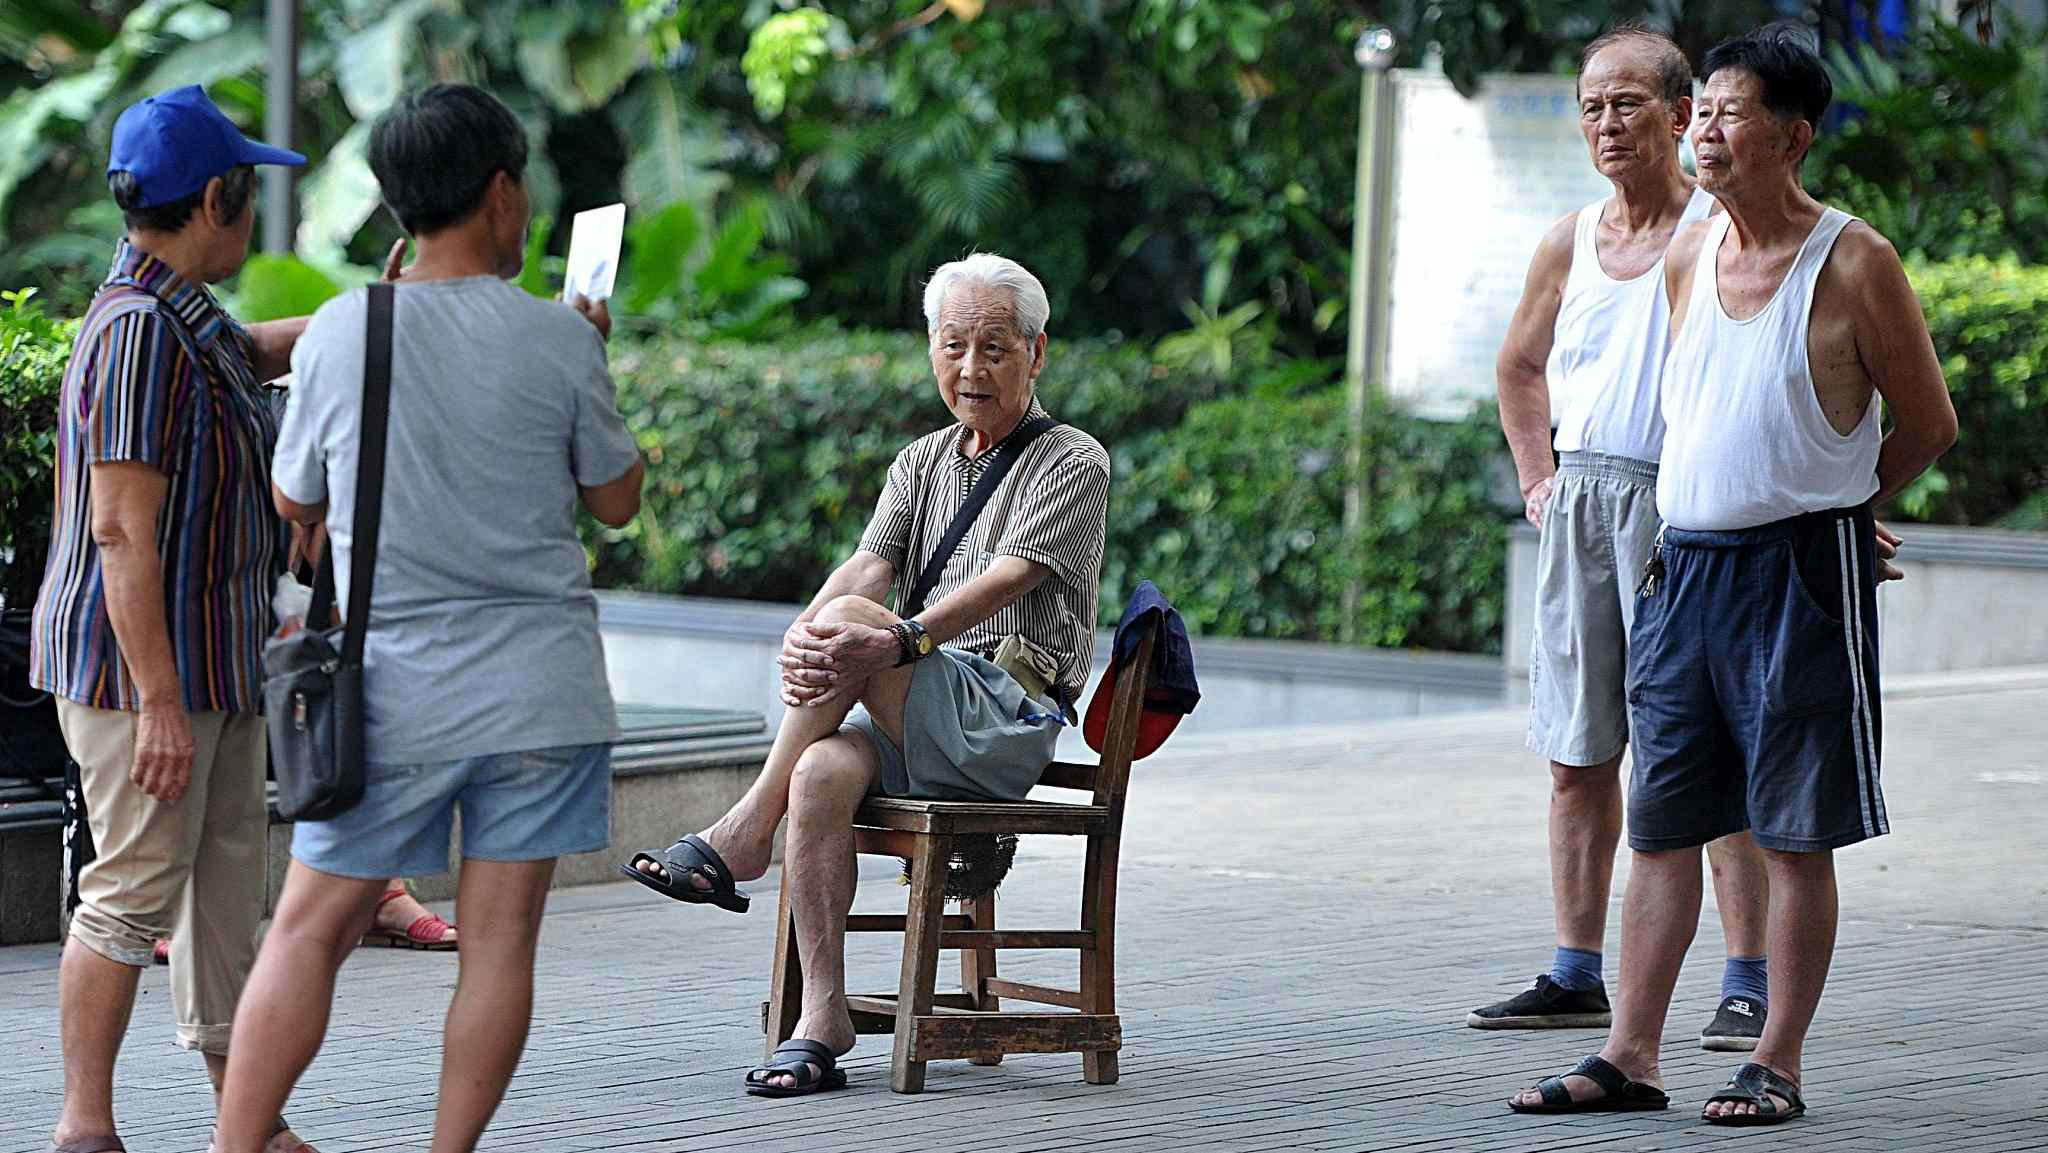 China's demographic transition: Old is gold?